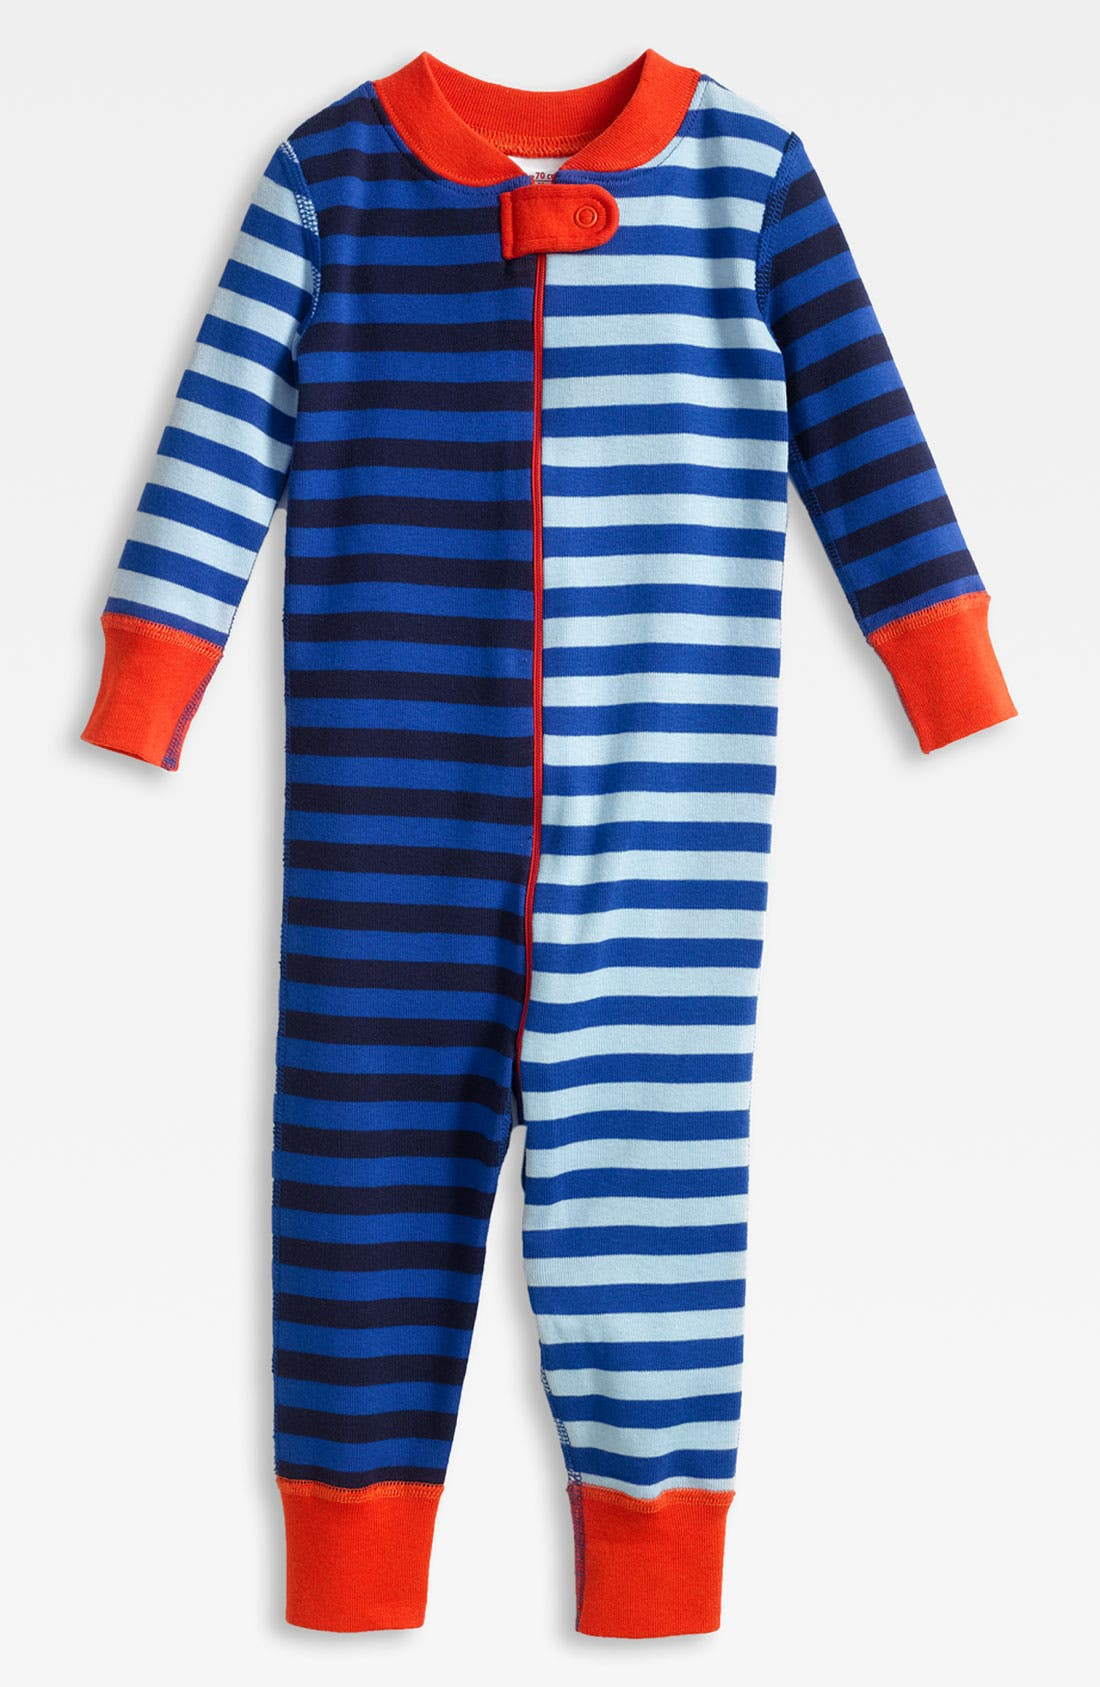 Alternate Image 1 Selected - Hanna Andersson Fitted Romper (Infant)